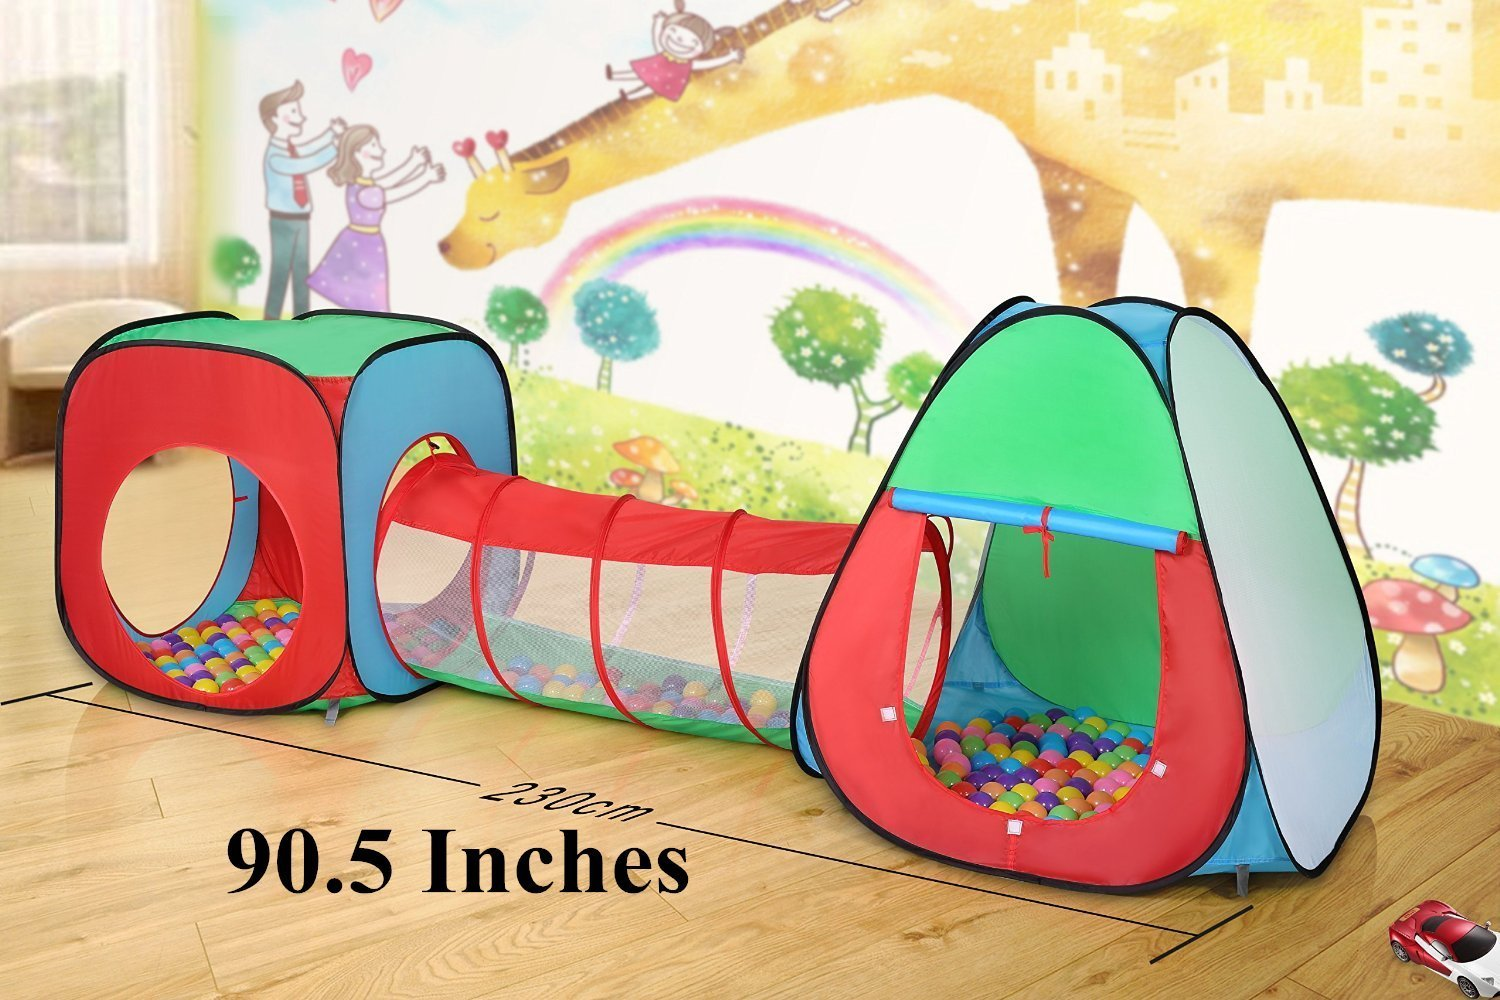 Amazon.com Roadacc 3-Piece Children Play Tent Set of Square Cubby Triangle Cubby and Spring-Pop Tunnel Toys u0026 Games & Amazon.com: Roadacc 3-Piece Children Play Tent Set of Square Cubby ...